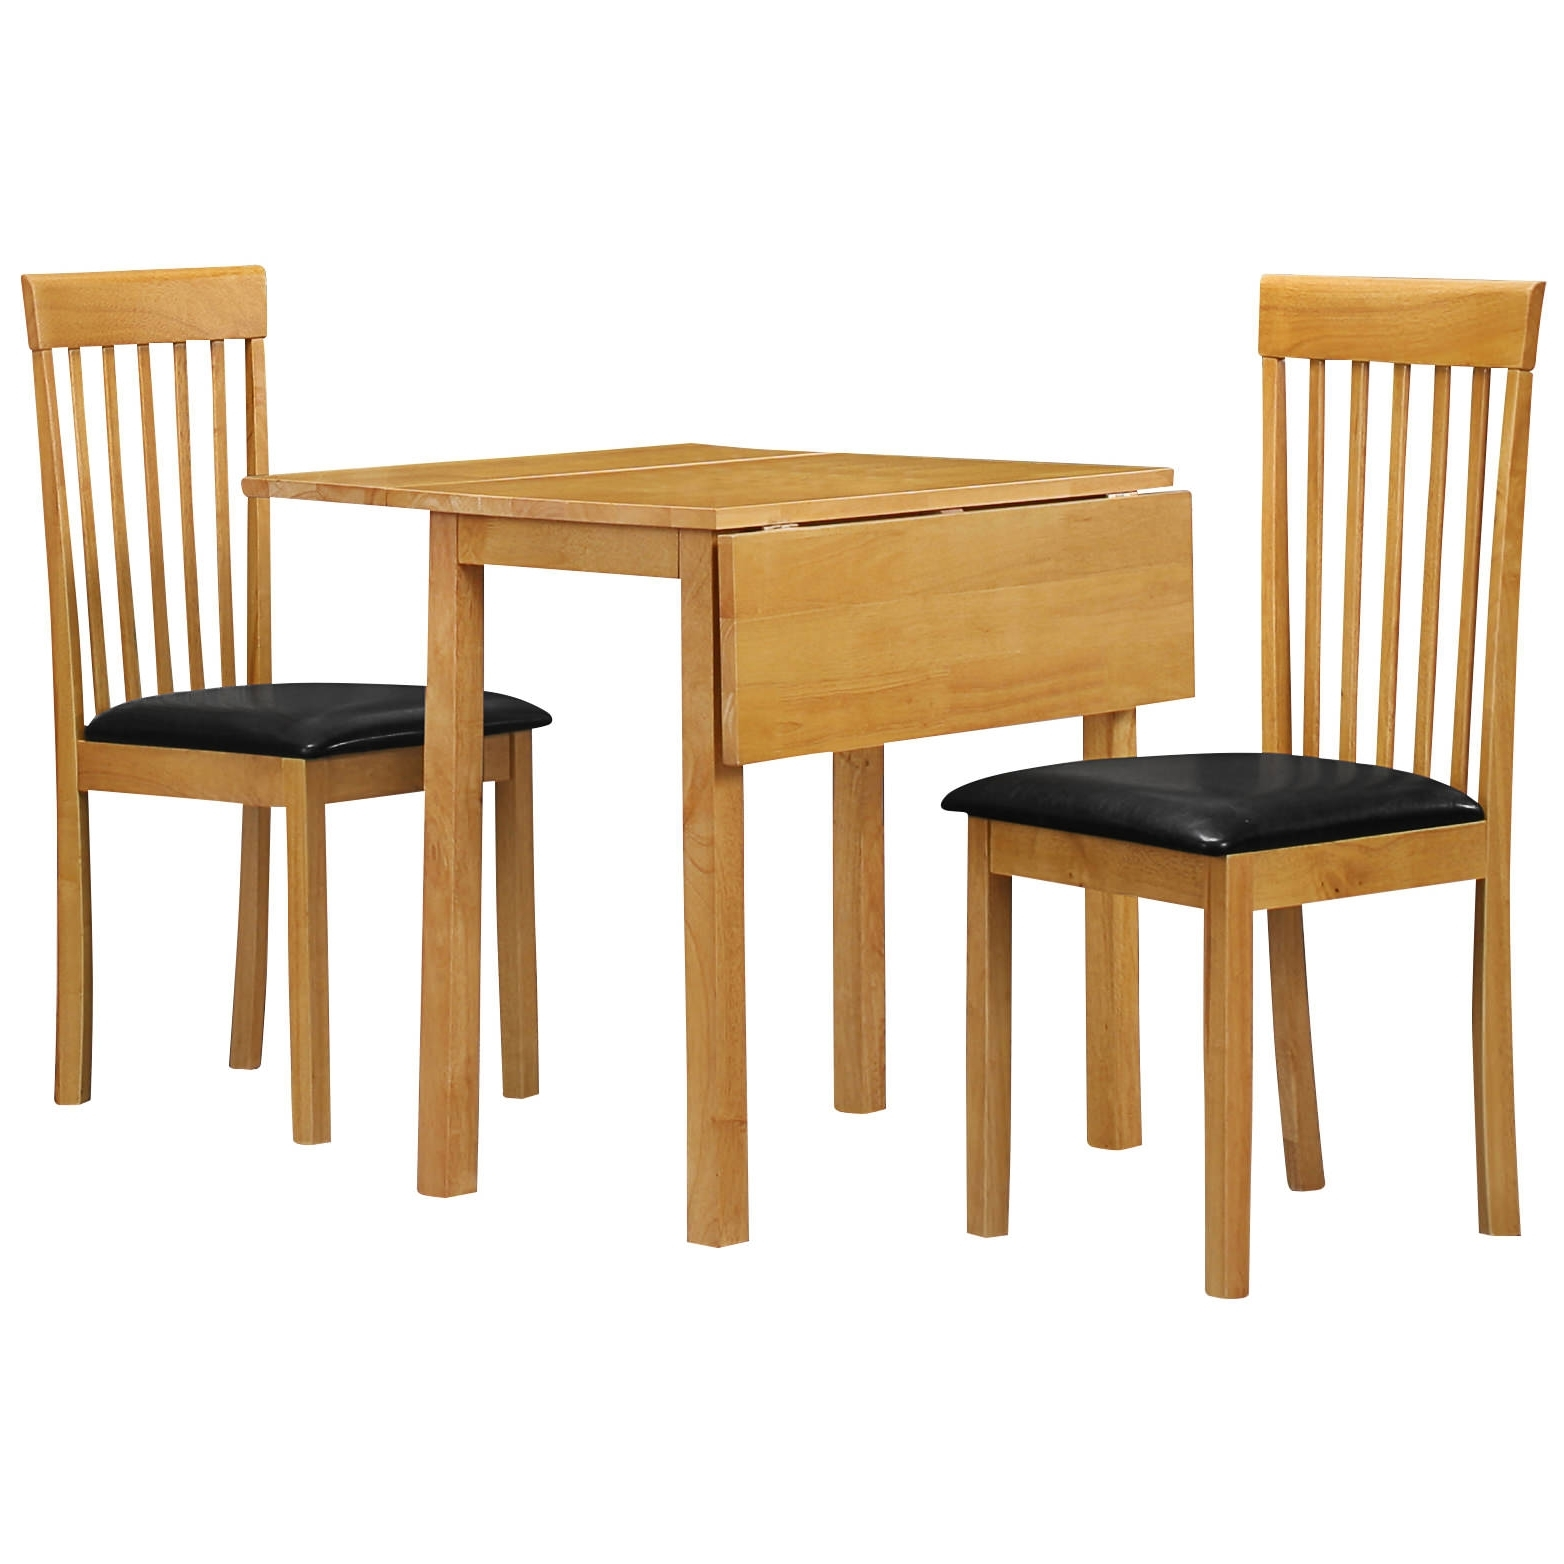 Black Extendable Dining Tables And Chairs In Recent Natural Oak Extending Extendable Dining Table And Chair Set With (View 13 of 25)